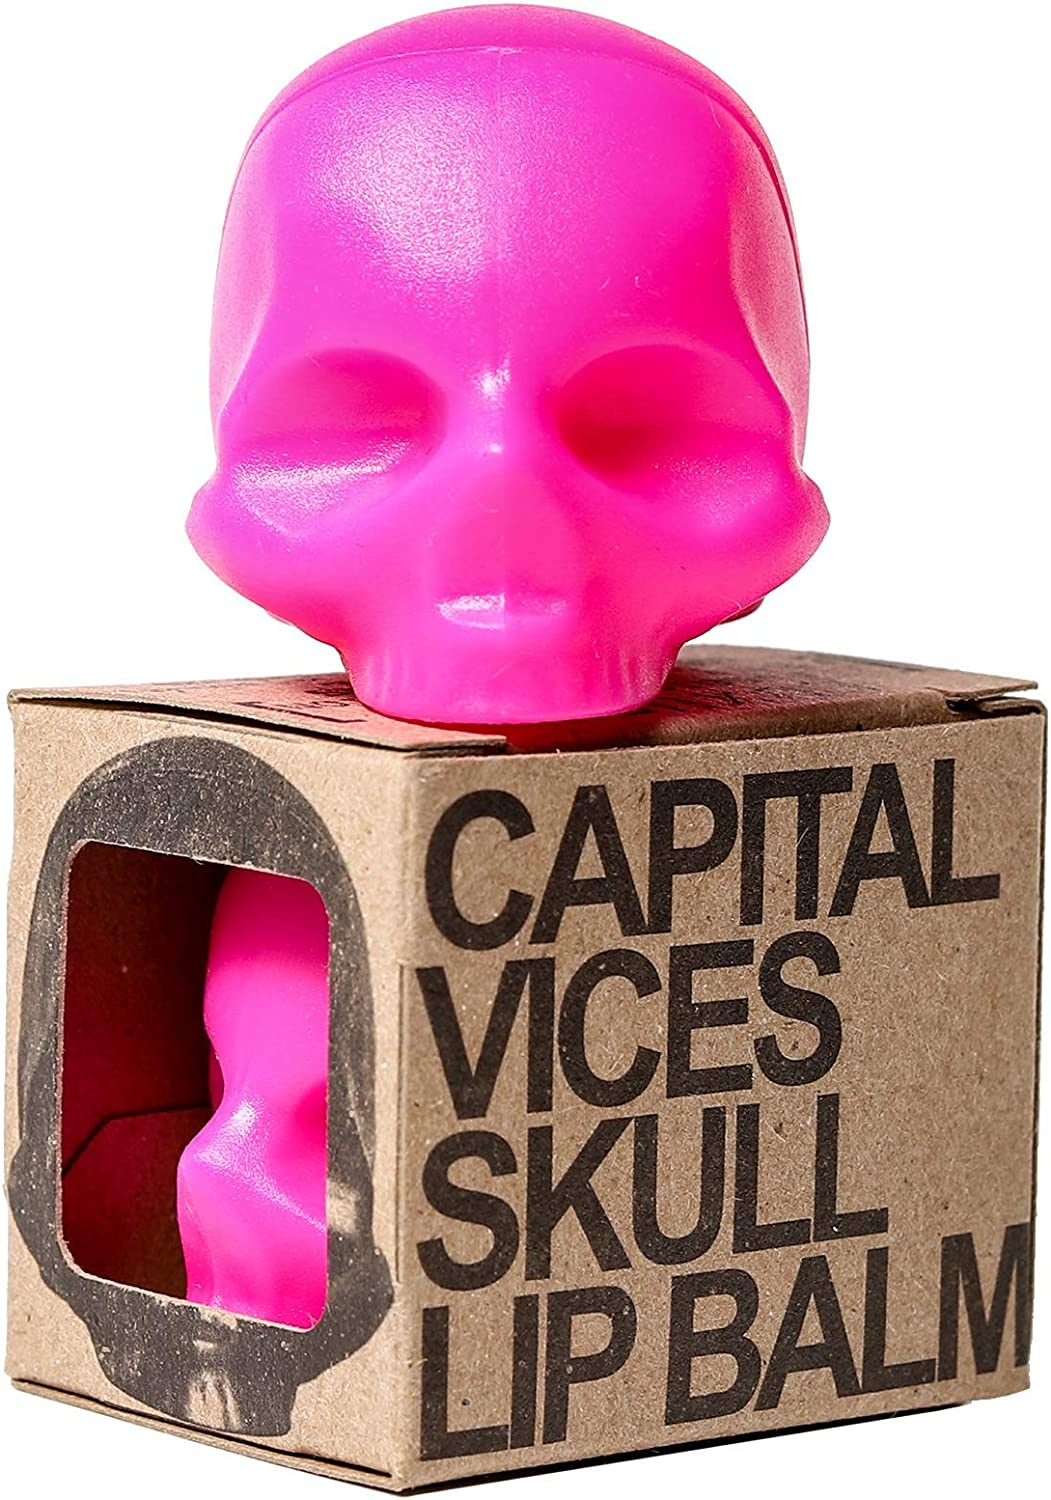 Rebels Refinery Capital Vices Skull-Shaped Lip Balm for Shine-Free Moisturizing – Mint Flavor – Vitamin E Antioxidant and Coconut & Sweet Almond Oil Extracts Nourish Chapped Lips – Pink